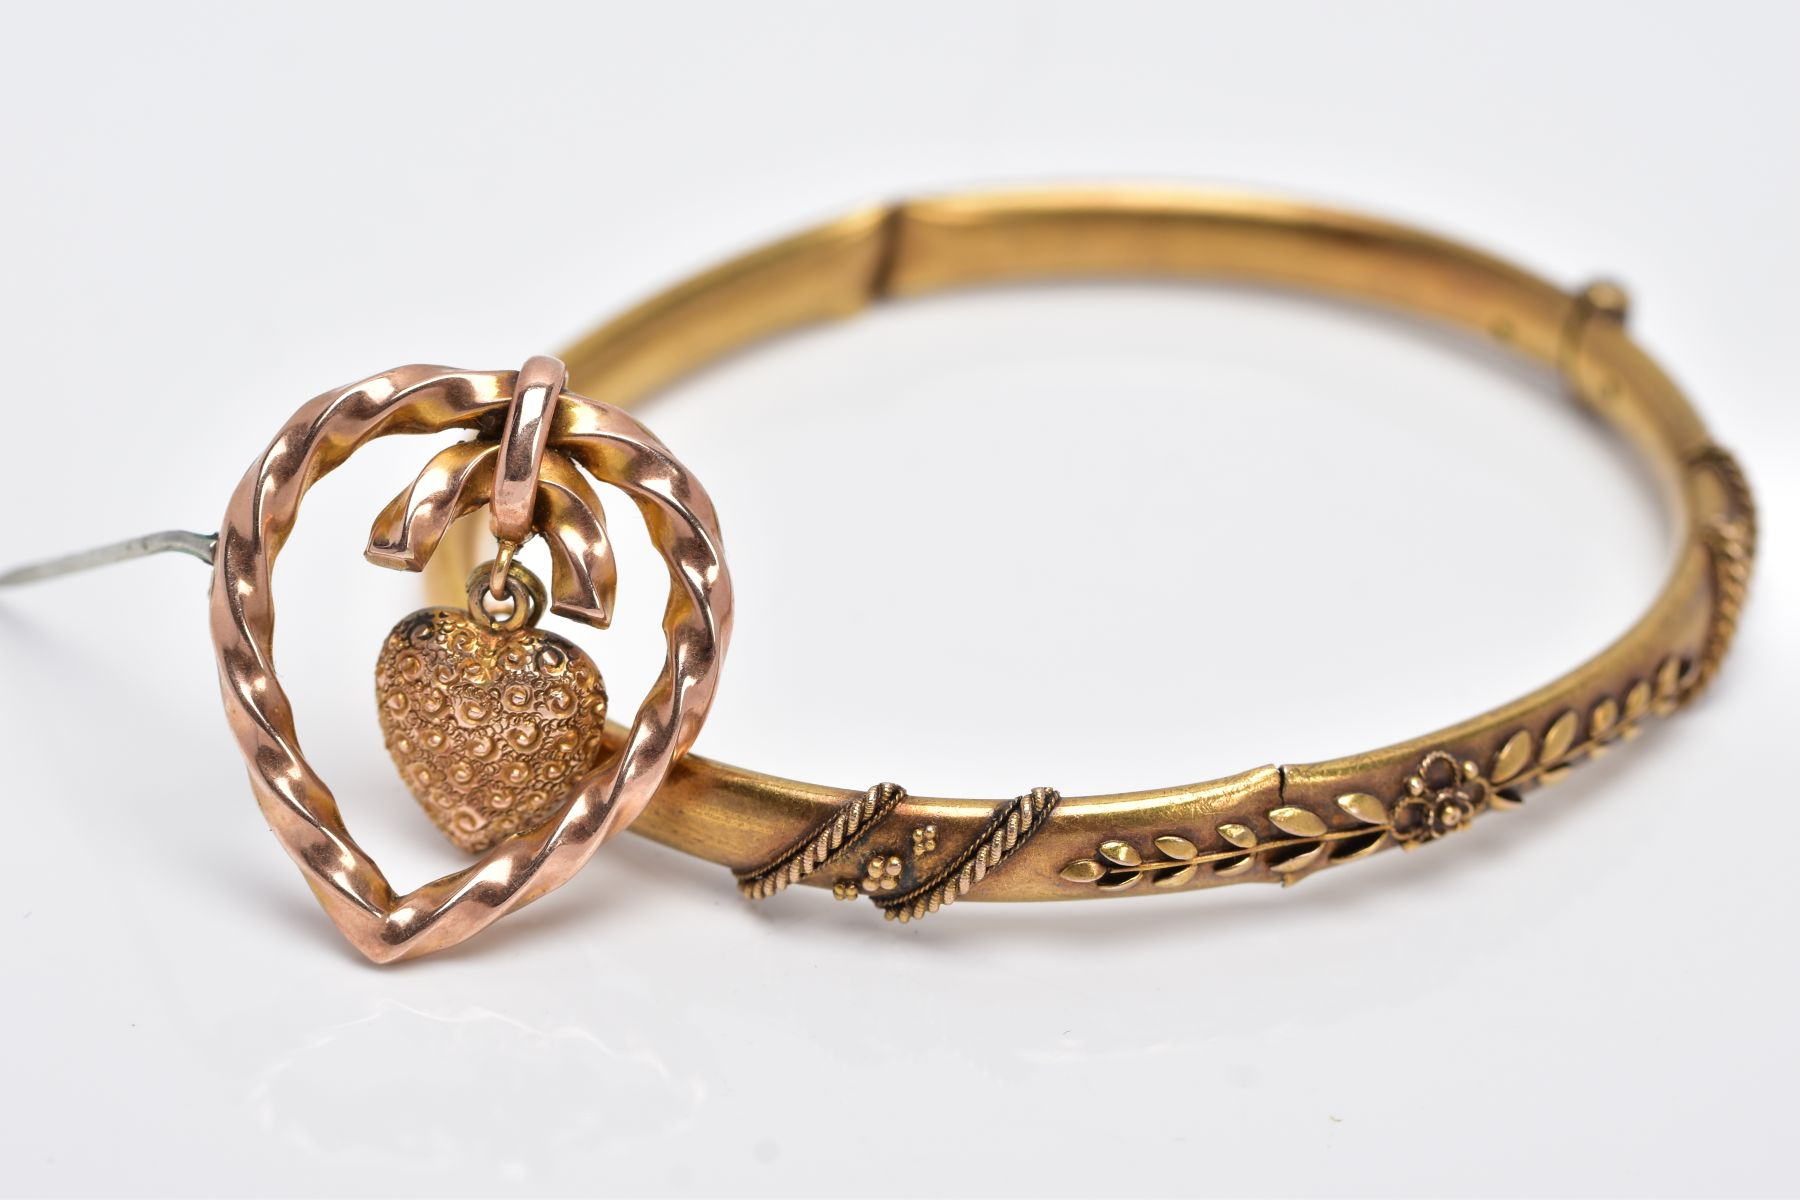 A LATE VICTORIAN BANGLE AND BROOCH, the AF hinged bangle with applied floral and bead design, - Image 2 of 4